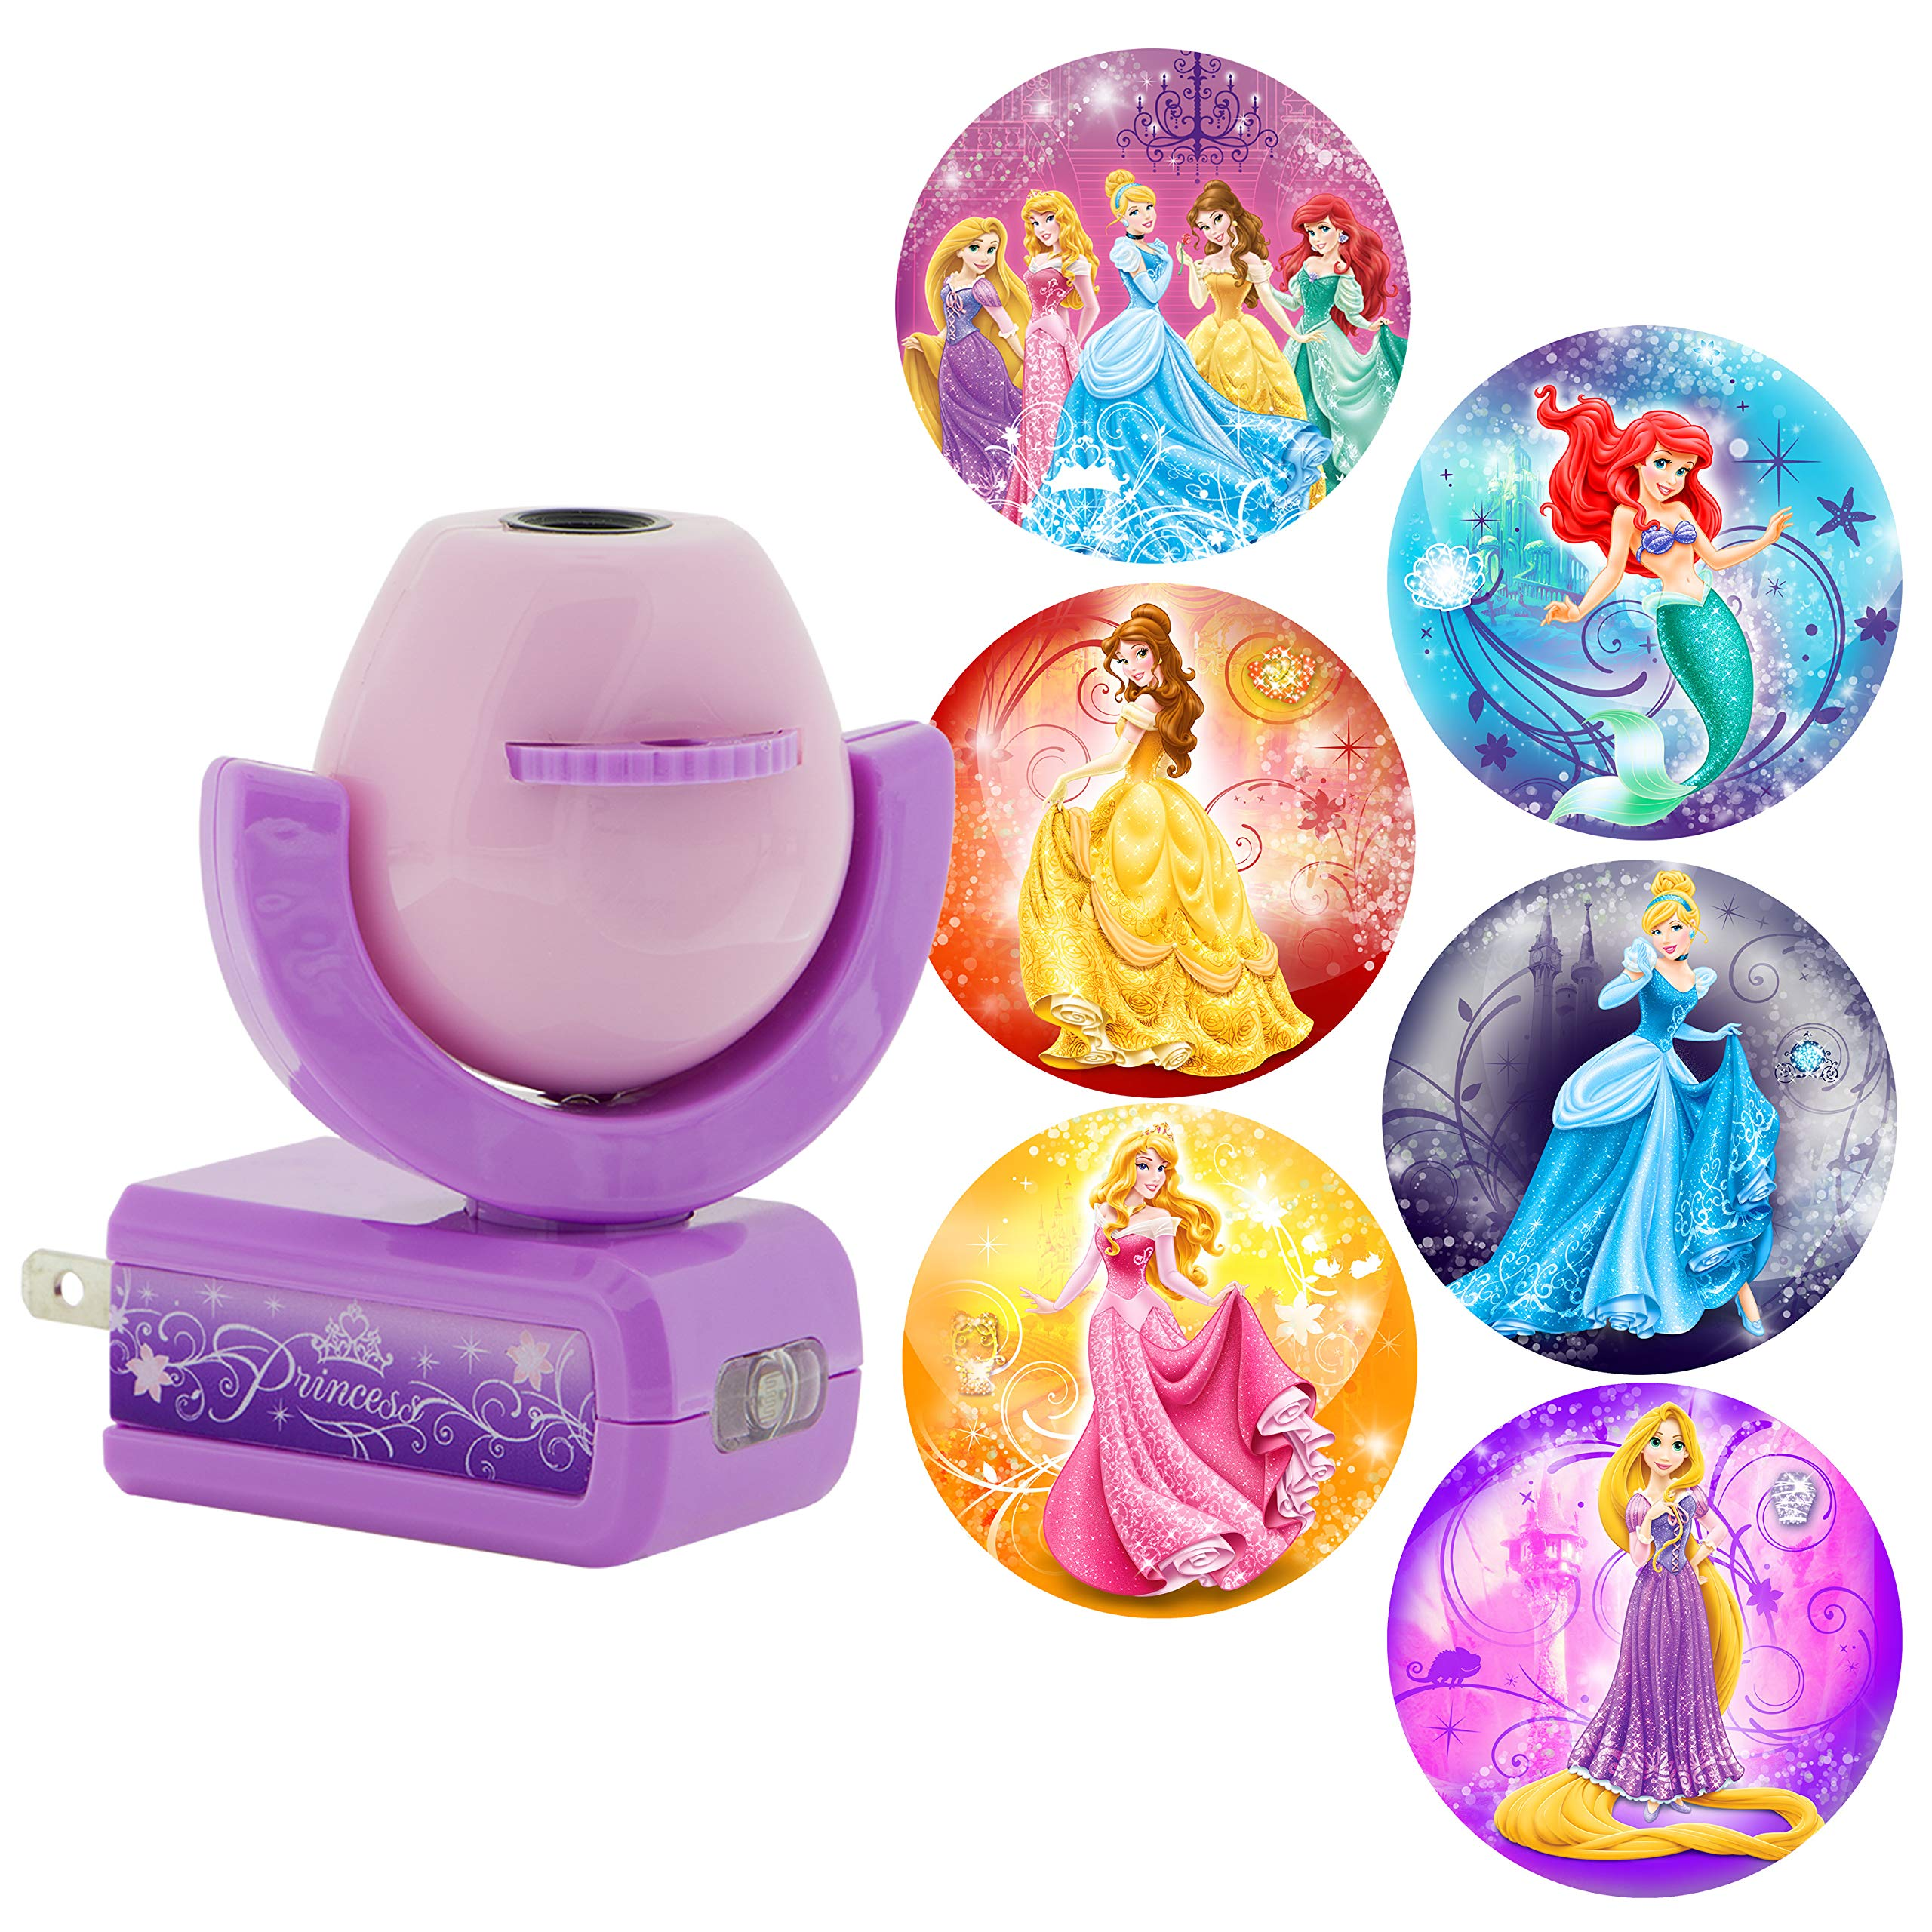 Projectables Disney Princess 6-Image LED Night Light Projector, Dusk-to-Dawn Sensor, Project Princesses Cinderella, Ariel, Aurora, Belle, & Rapunzel on Ceiling, Wall, or Floor, Pink/Purple, 11738 by Projectables